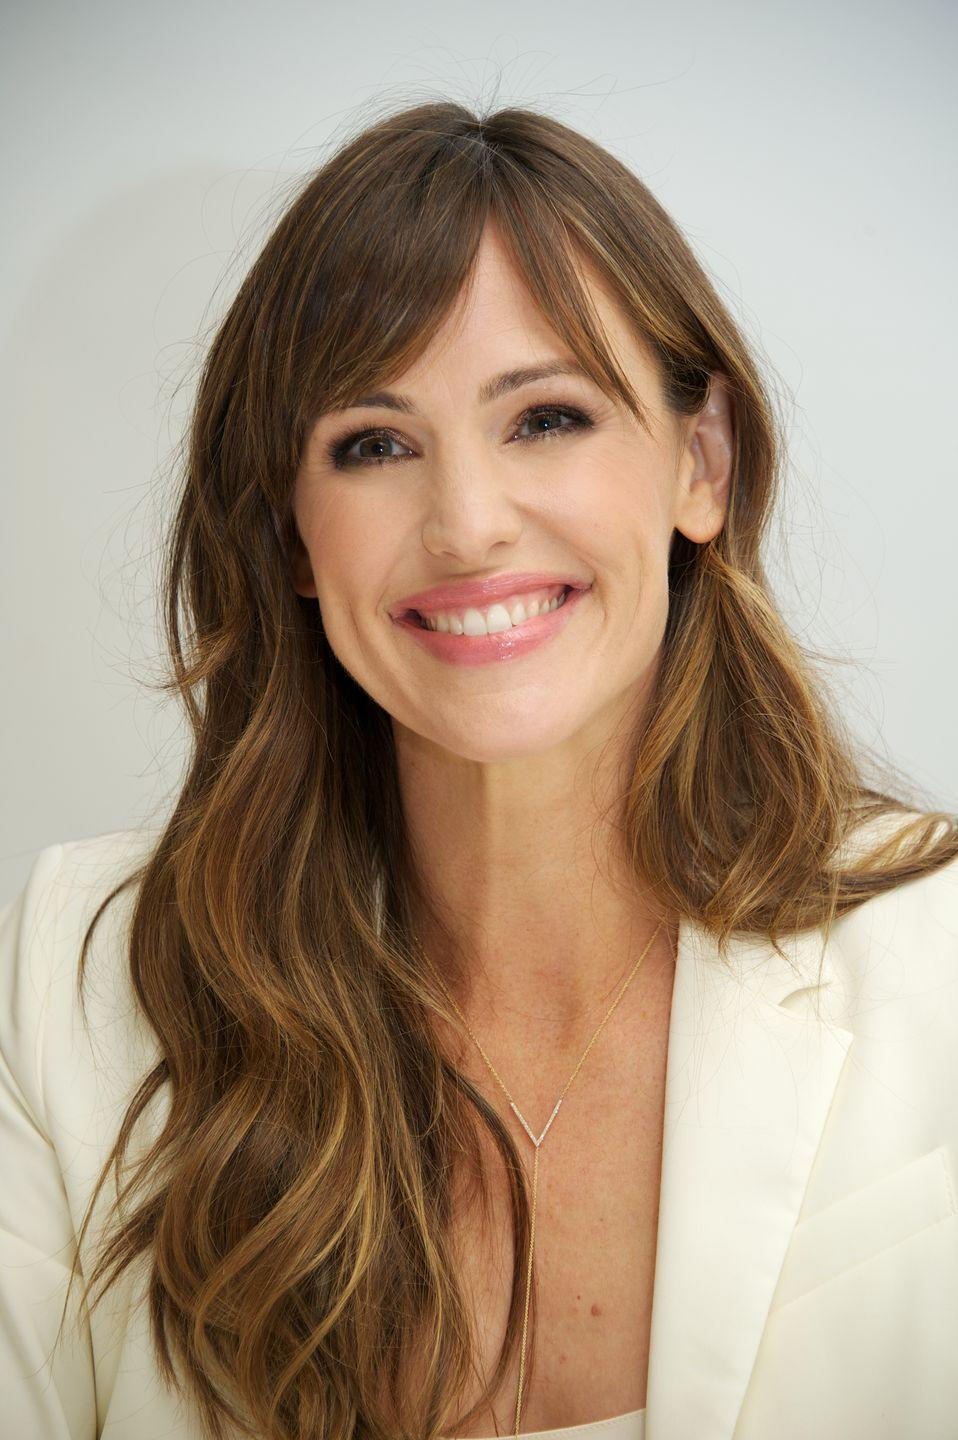 "<p>Garner called her 2005 movie <em>Elektra</em> ""awful,"" according to her ex-boyfriend Michael Vartan. In an interview with <em><a href=""http://www.sfgate.com/news/article/Jennifer-Garner-deemed-Elektra-awful-Penelope-2702759.php"" rel=""nofollow noopener"" target=""_blank"" data-ylk=""slk:Us Weekly"" class=""link rapid-noclick-resp"">Us Weekly</a></em>, Vartan is quoted as saying, ""I heard [<em>Elektra</em>] was awful. [Jennifer] called me and told me it was awful. She had to do it because of <em>Daredevil</em>. It was in her contract.""</p>"